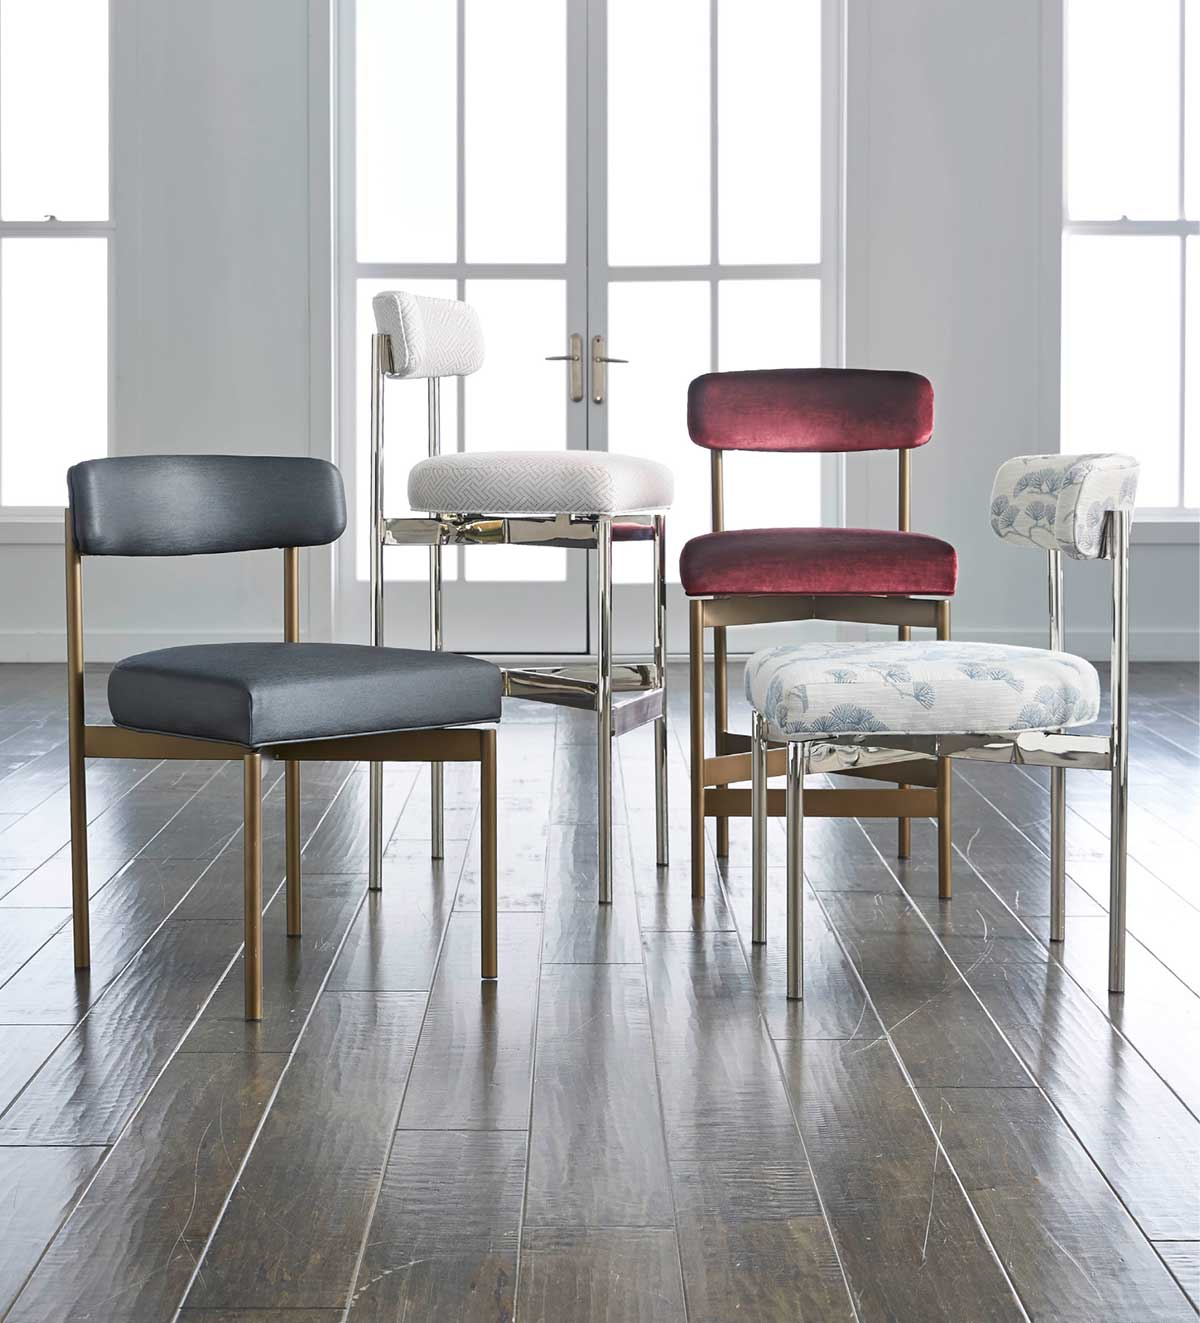 Dining chairs and barstools in a host of styles